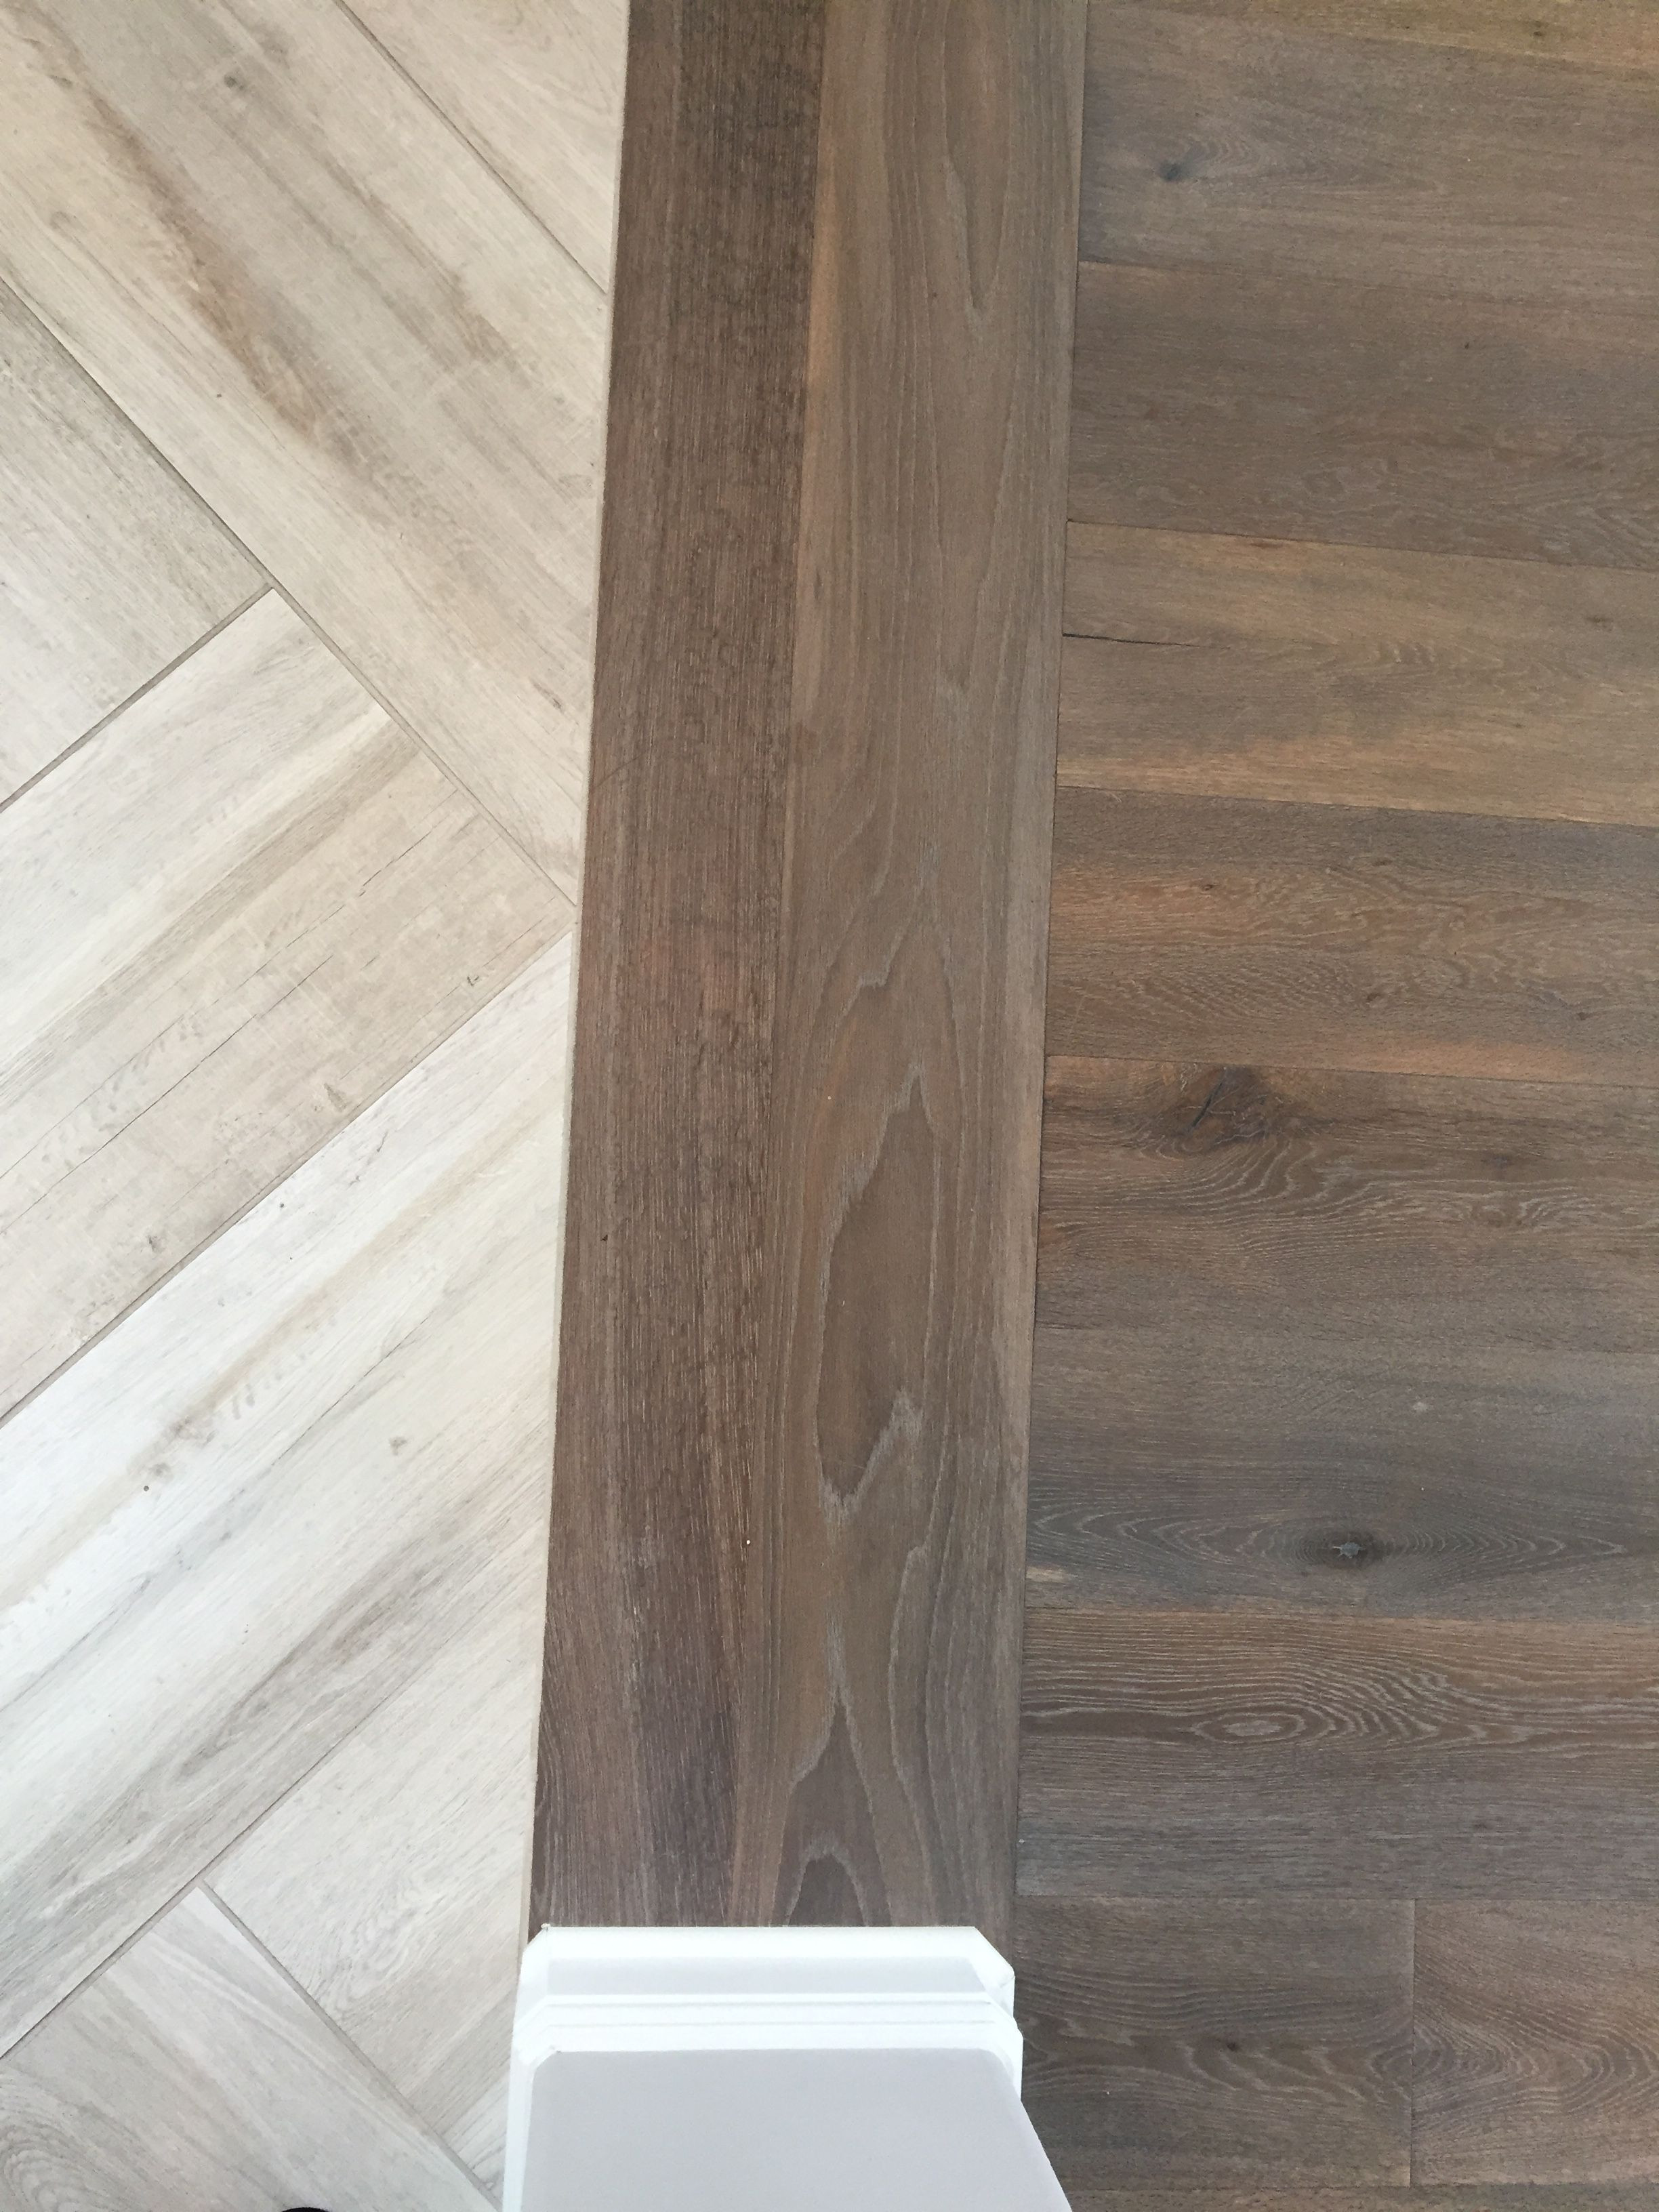 best adhesive for engineered hardwood flooring of floor transition laminate to herringbone tile pattern model with regard to floor transition laminate to herringbone tile pattern herringbone tile pattern herringbone wood floor